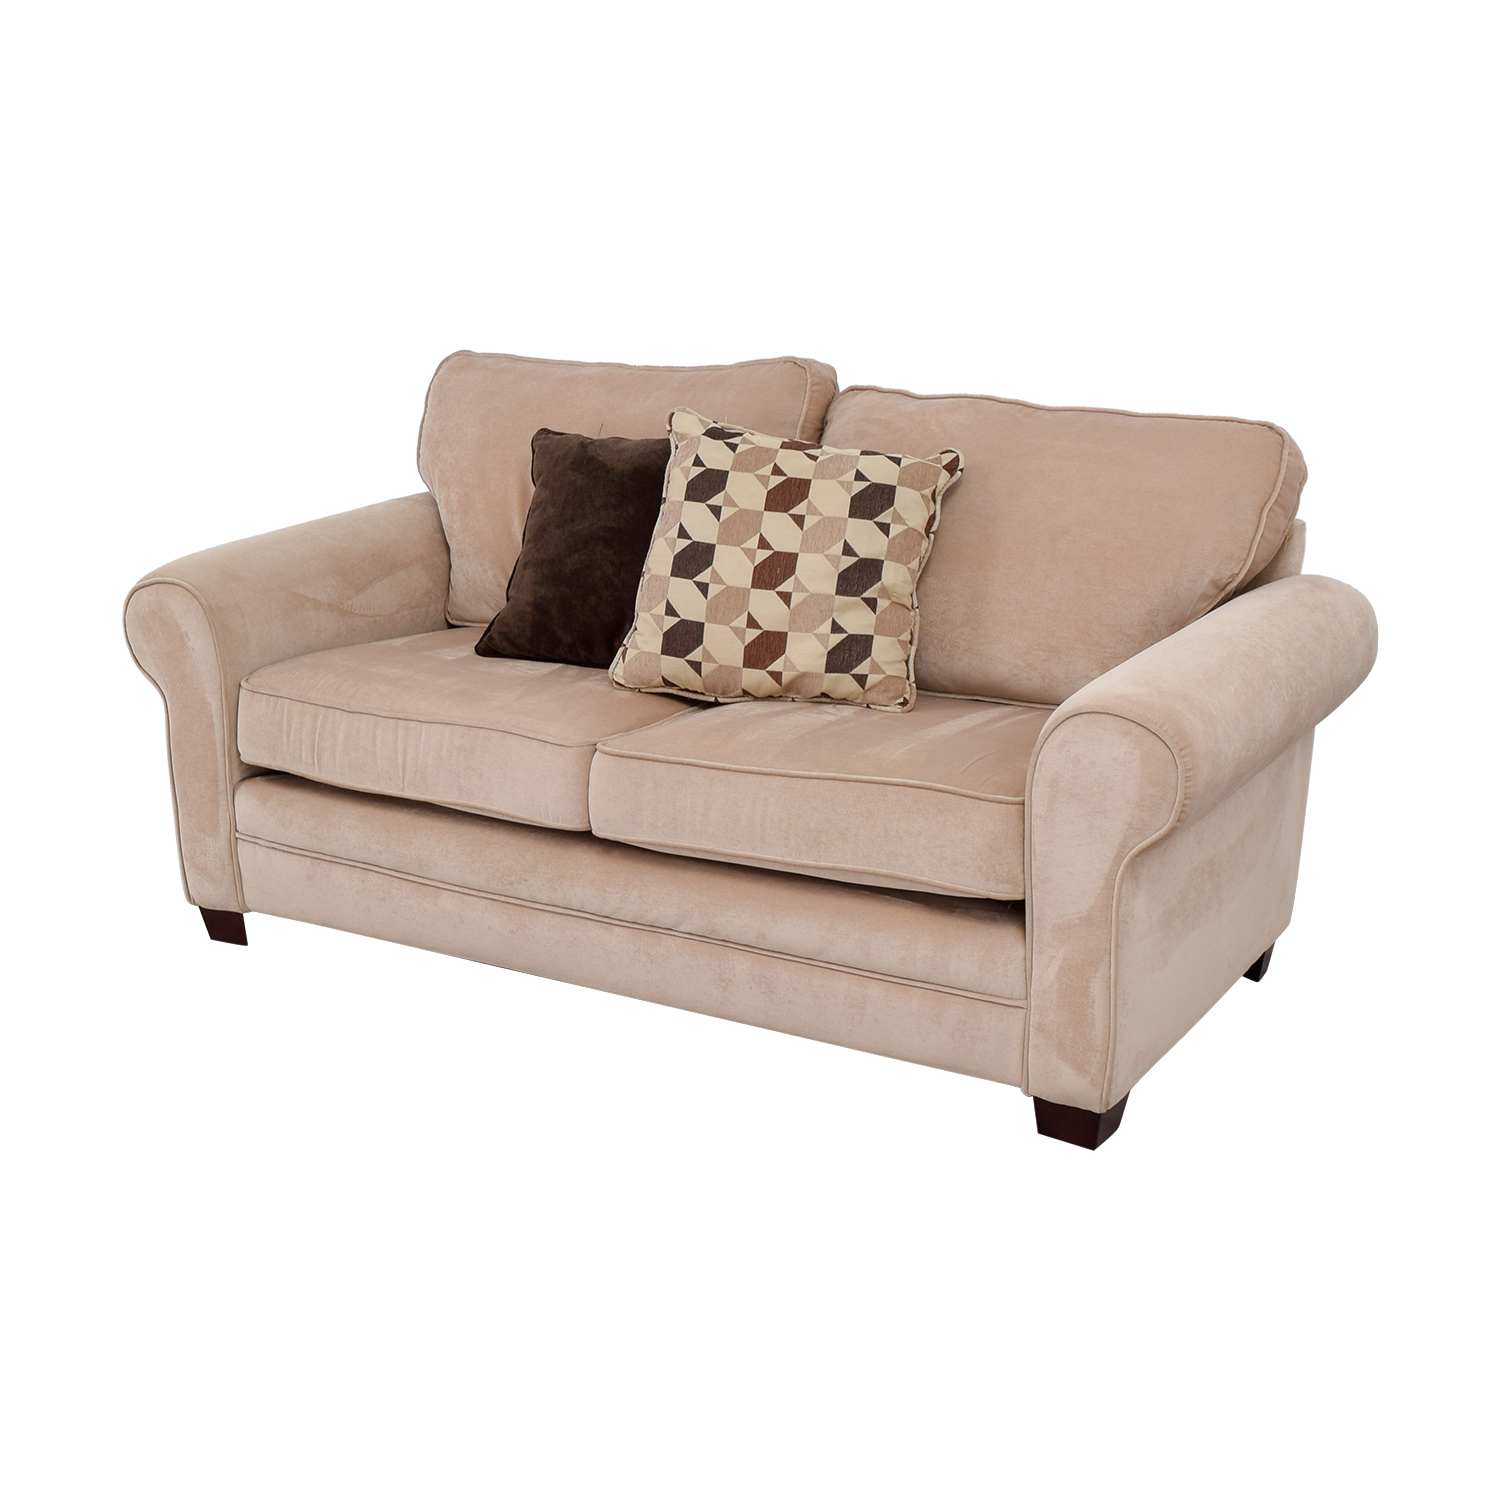 54 Off Bob S Furniture Bob S Furniture Maggie Ii Beige Two Cushion Loveseat Sofas